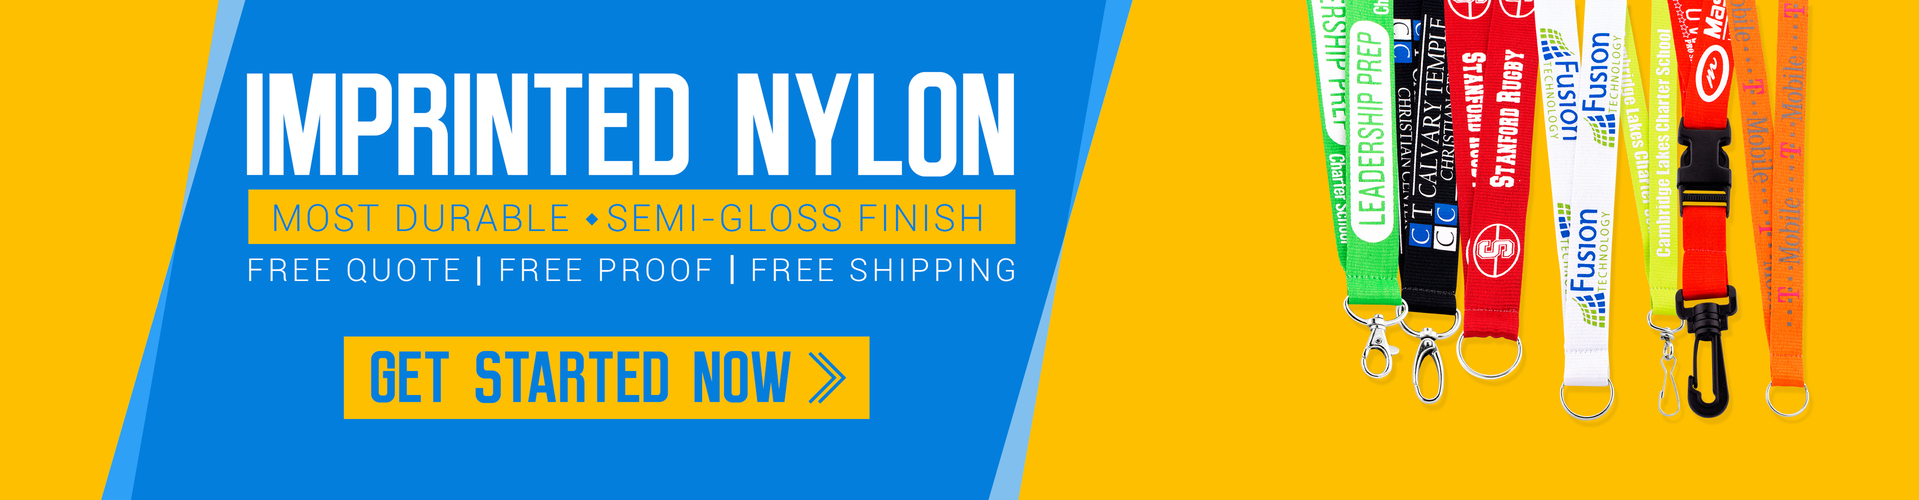 Imprinted-nylon